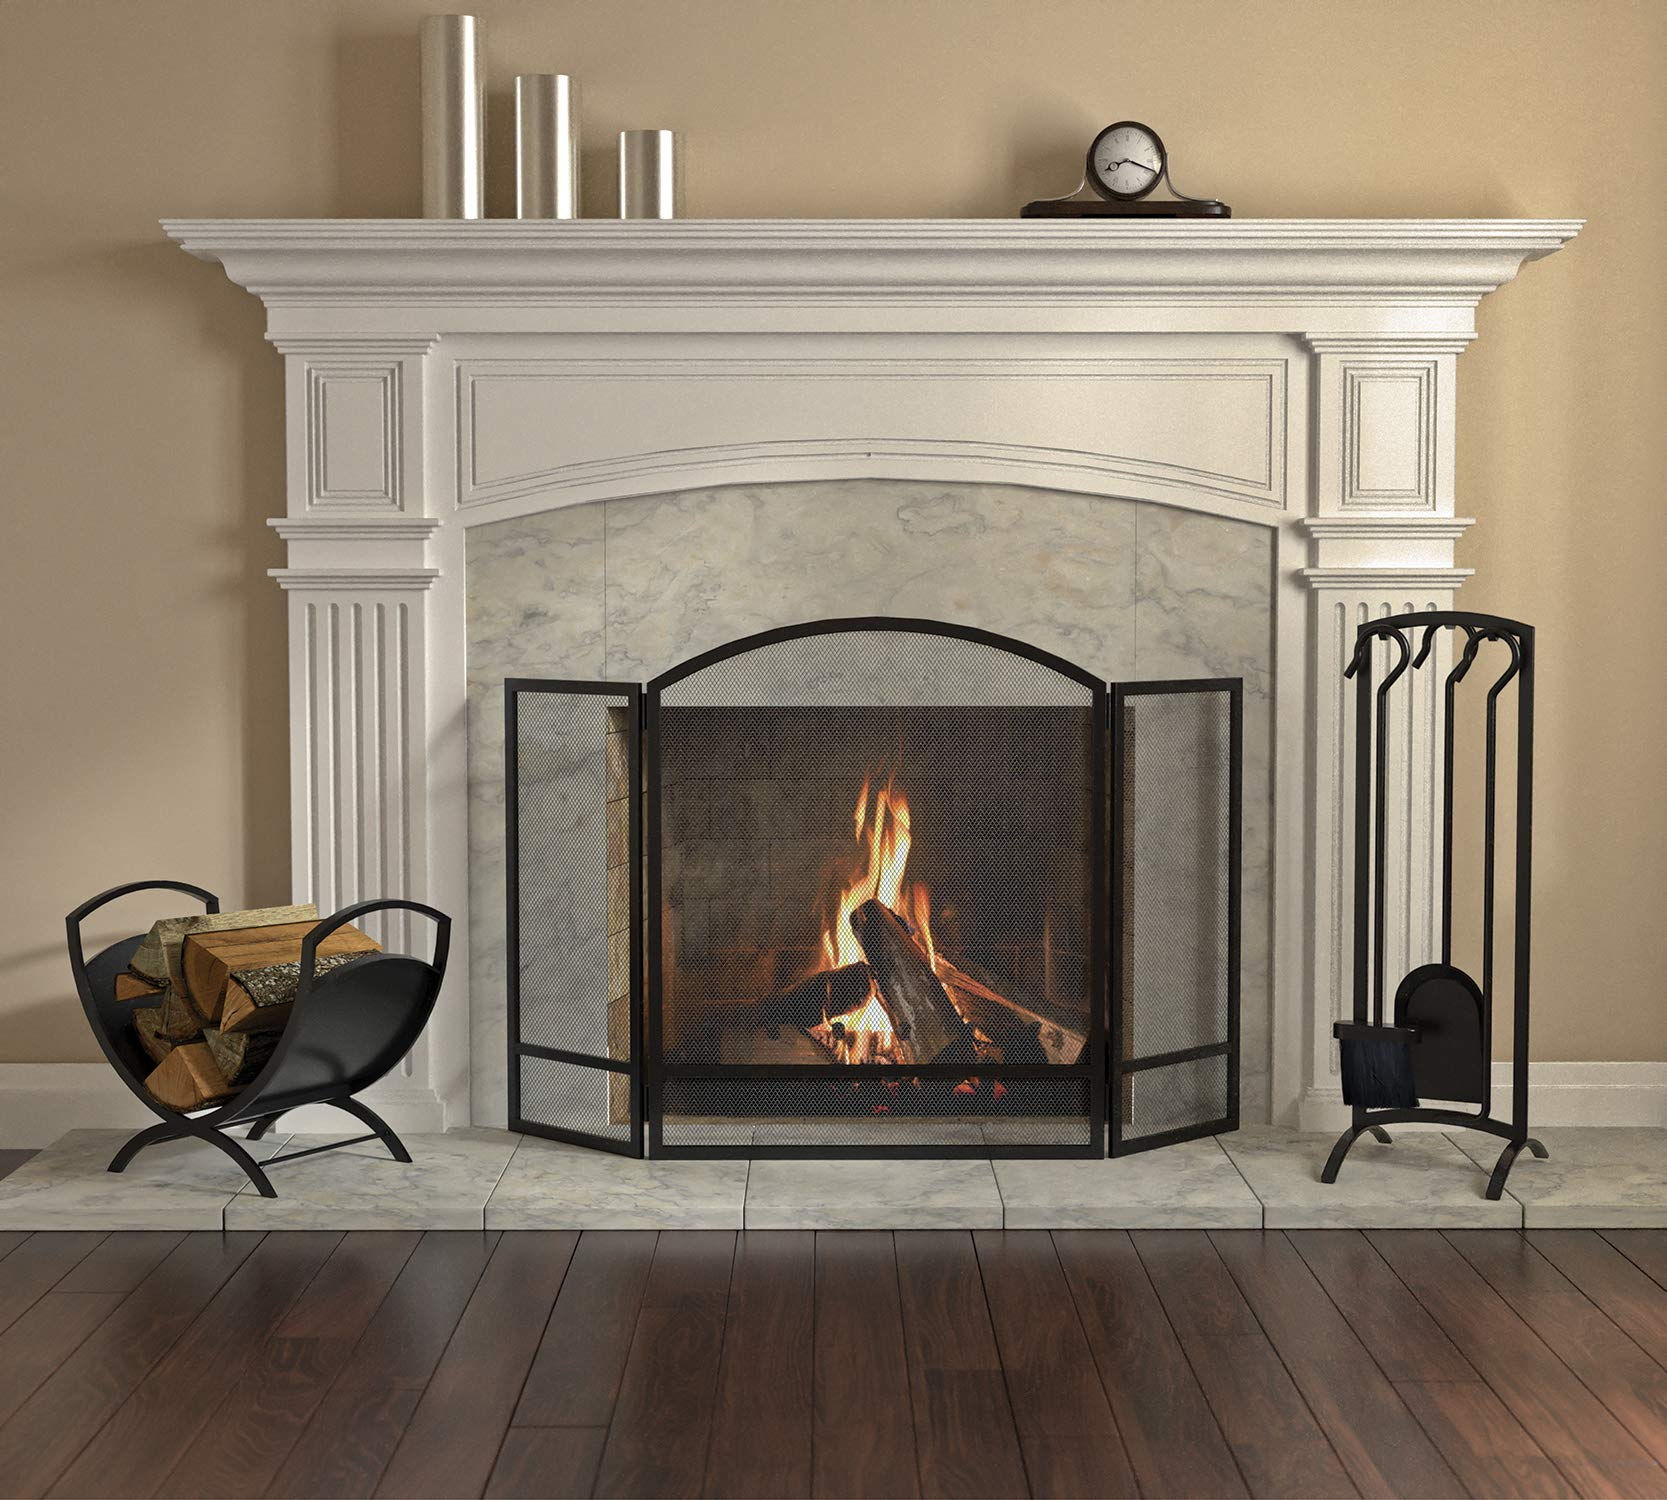 Panacea Products Not 15951 3-Panel Arch Screen with Double Bar for Fireplace, Multi by Panacea Products